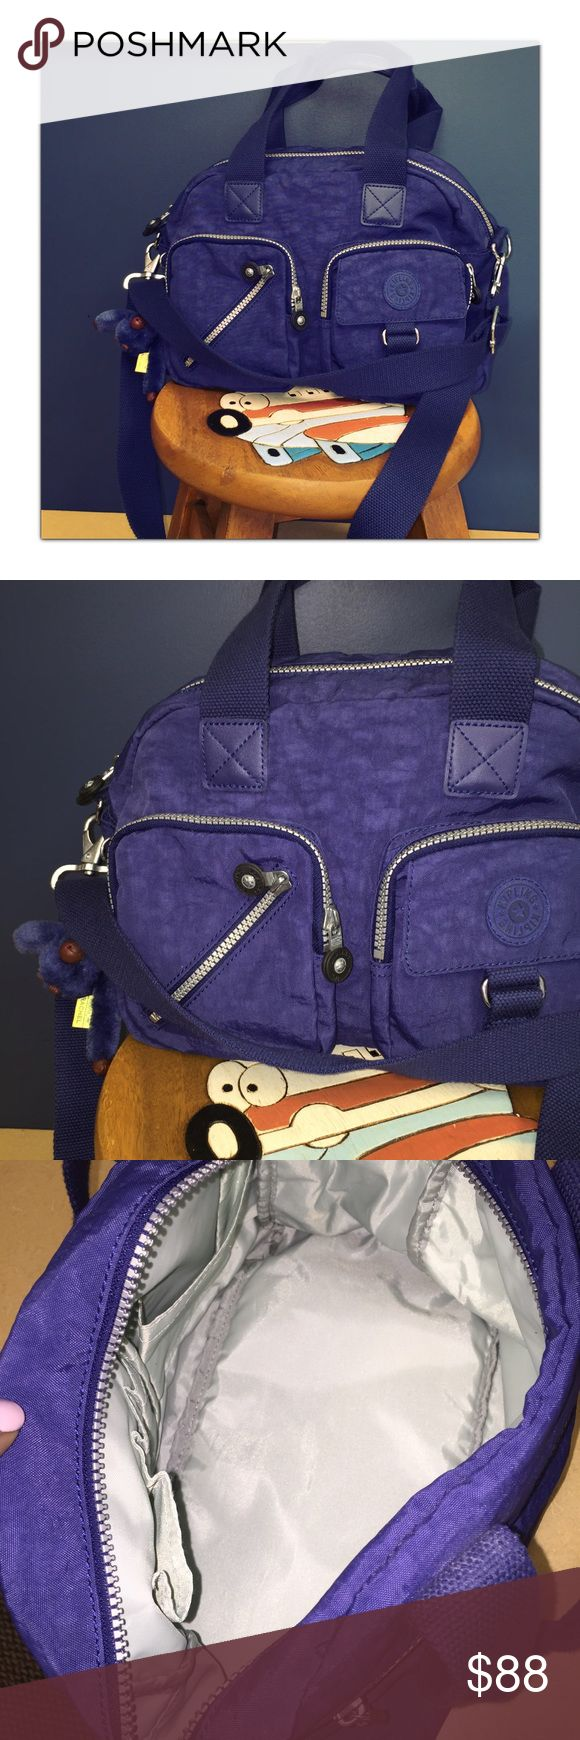 Kipling Default Medium Satchel Excellent condition. Has multiple compartment and loads of room! Such a great durable and spacious purse Kipling Bags Satchels